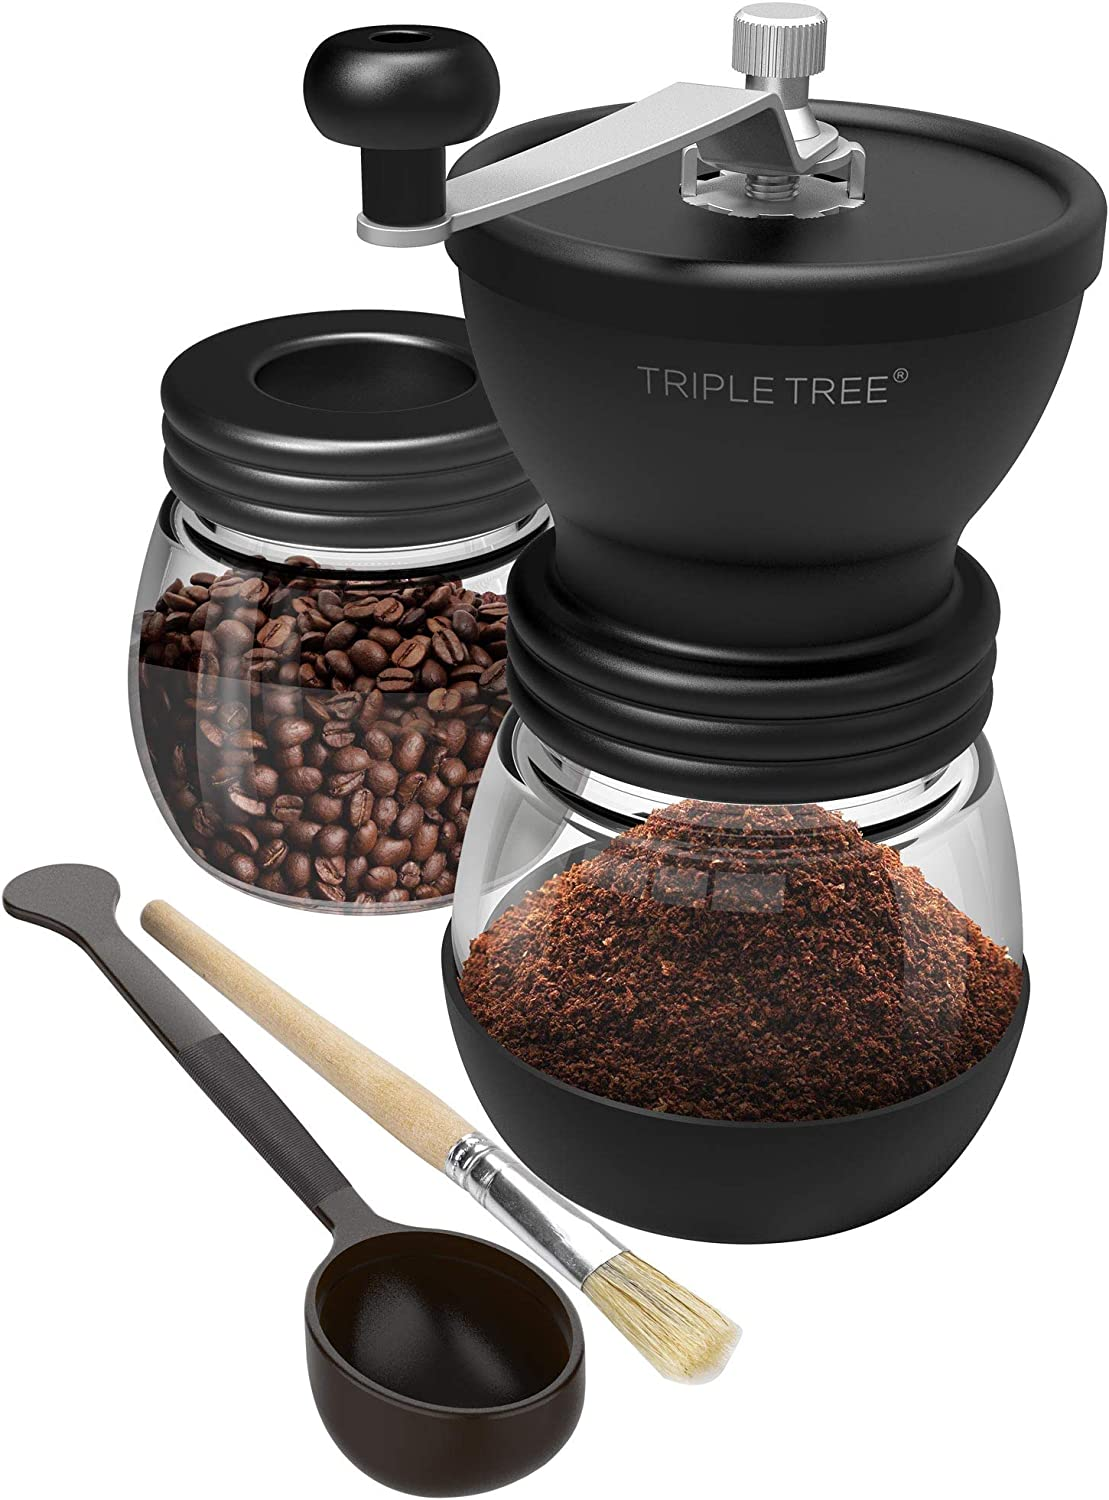 Glass Storage Jars Silicone Non-Slip Mat Easy to Clean Portable Hand Coffee Mill with Adjustable Ceramic Burrs Silicone Dust-Proof Cover for Beans Cleaning Brush Black BOCHEN Premium Manual Coffee Grinder